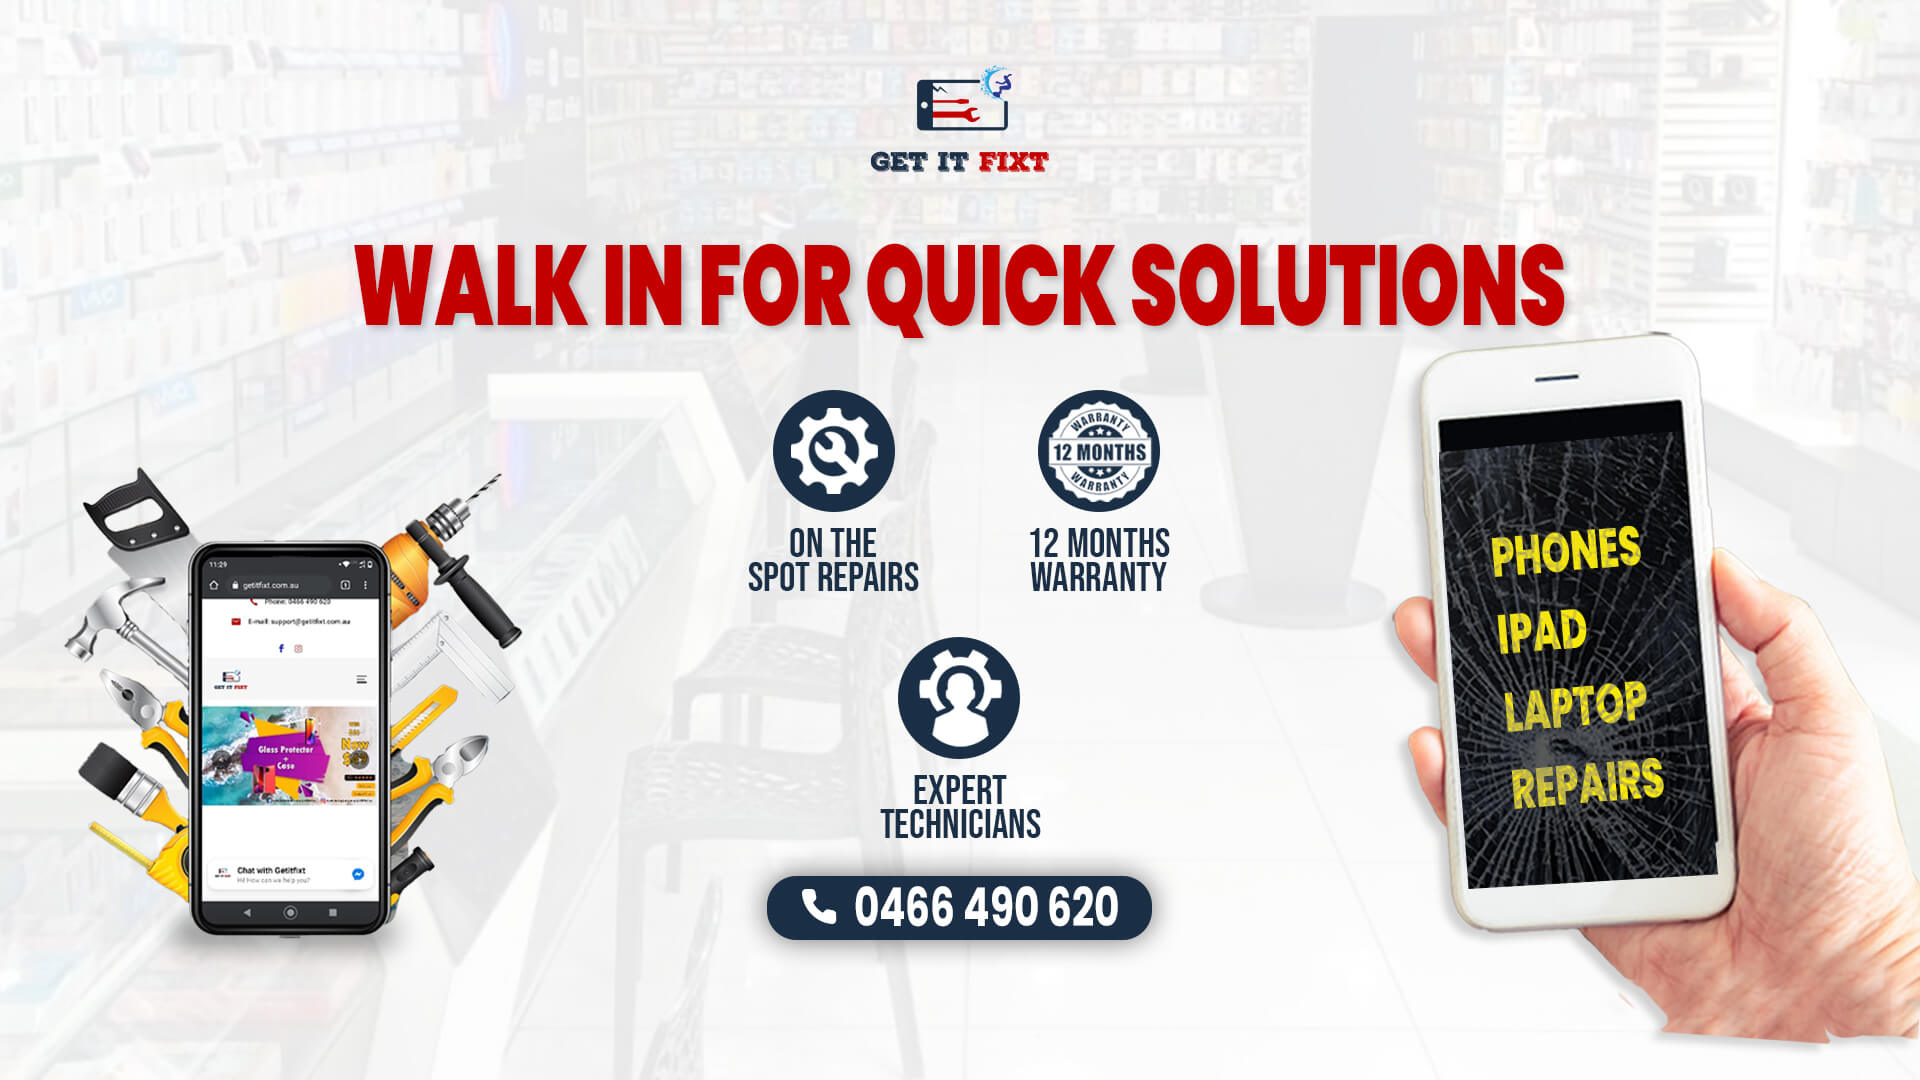 Walk in for quick services   On the spot repairs